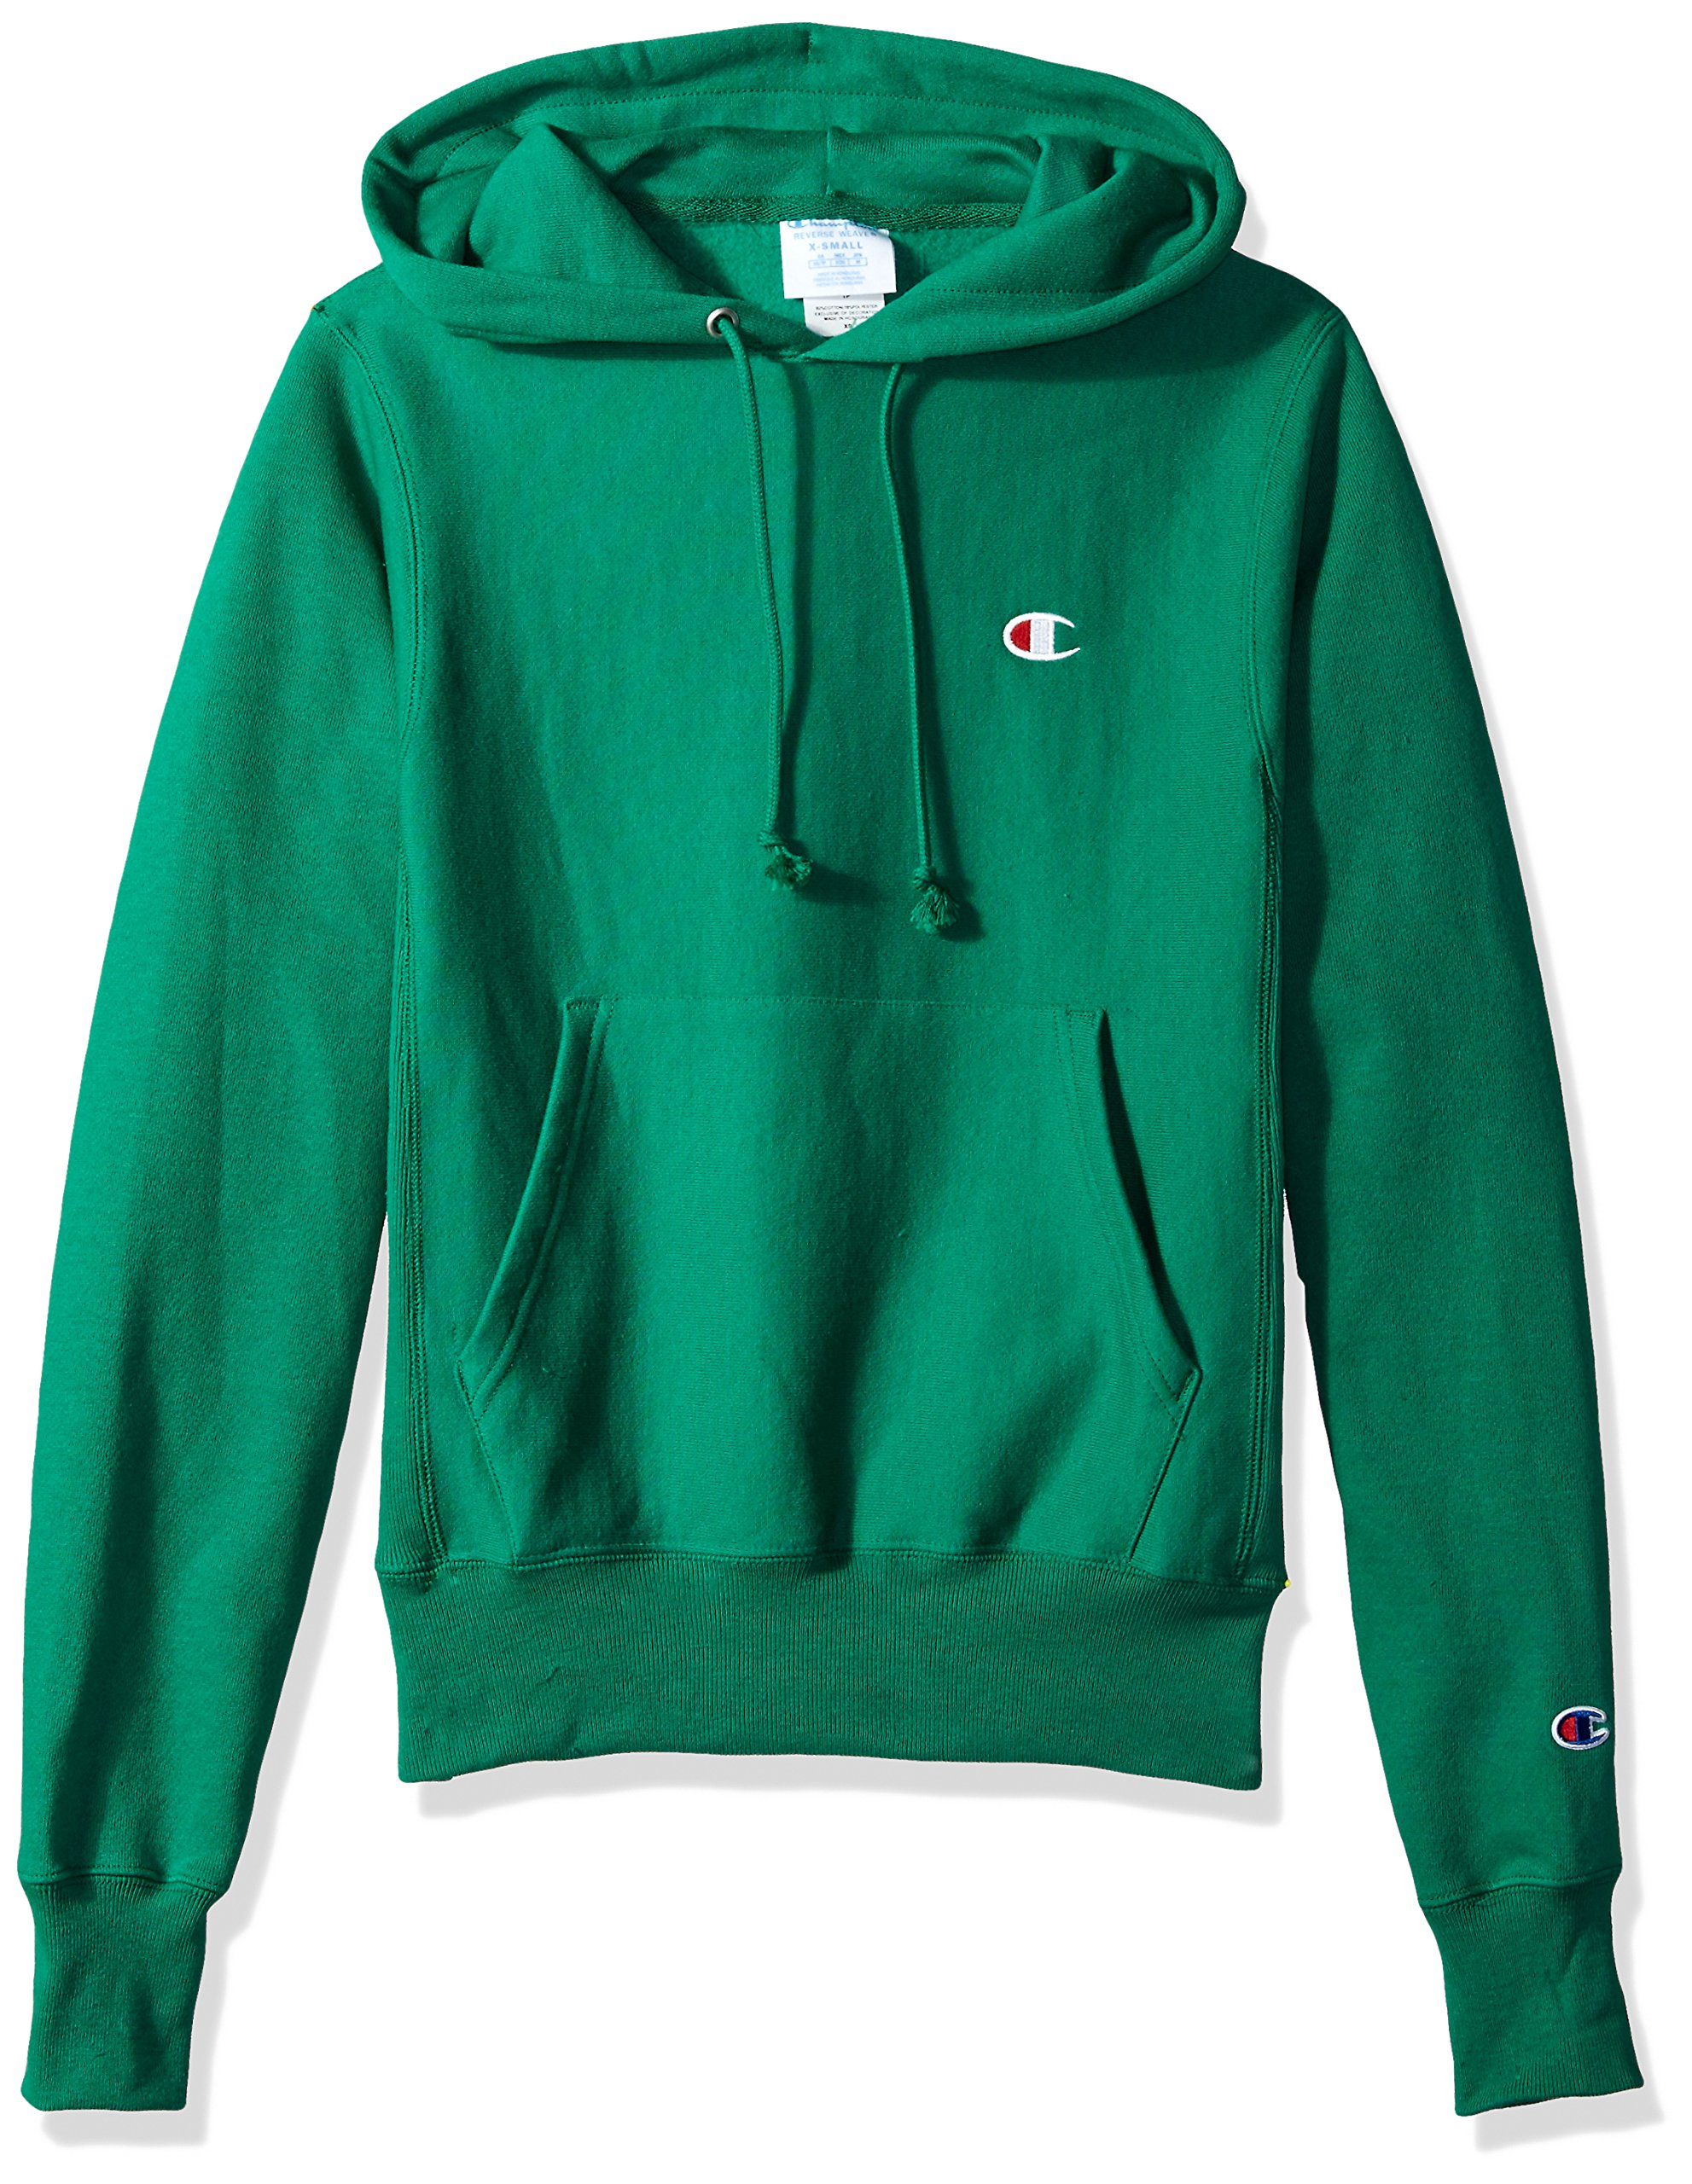 Champion LIFE Men's Reverse Weave Pullover Hoodie, Kelly Green/Left Chest C Logo Small